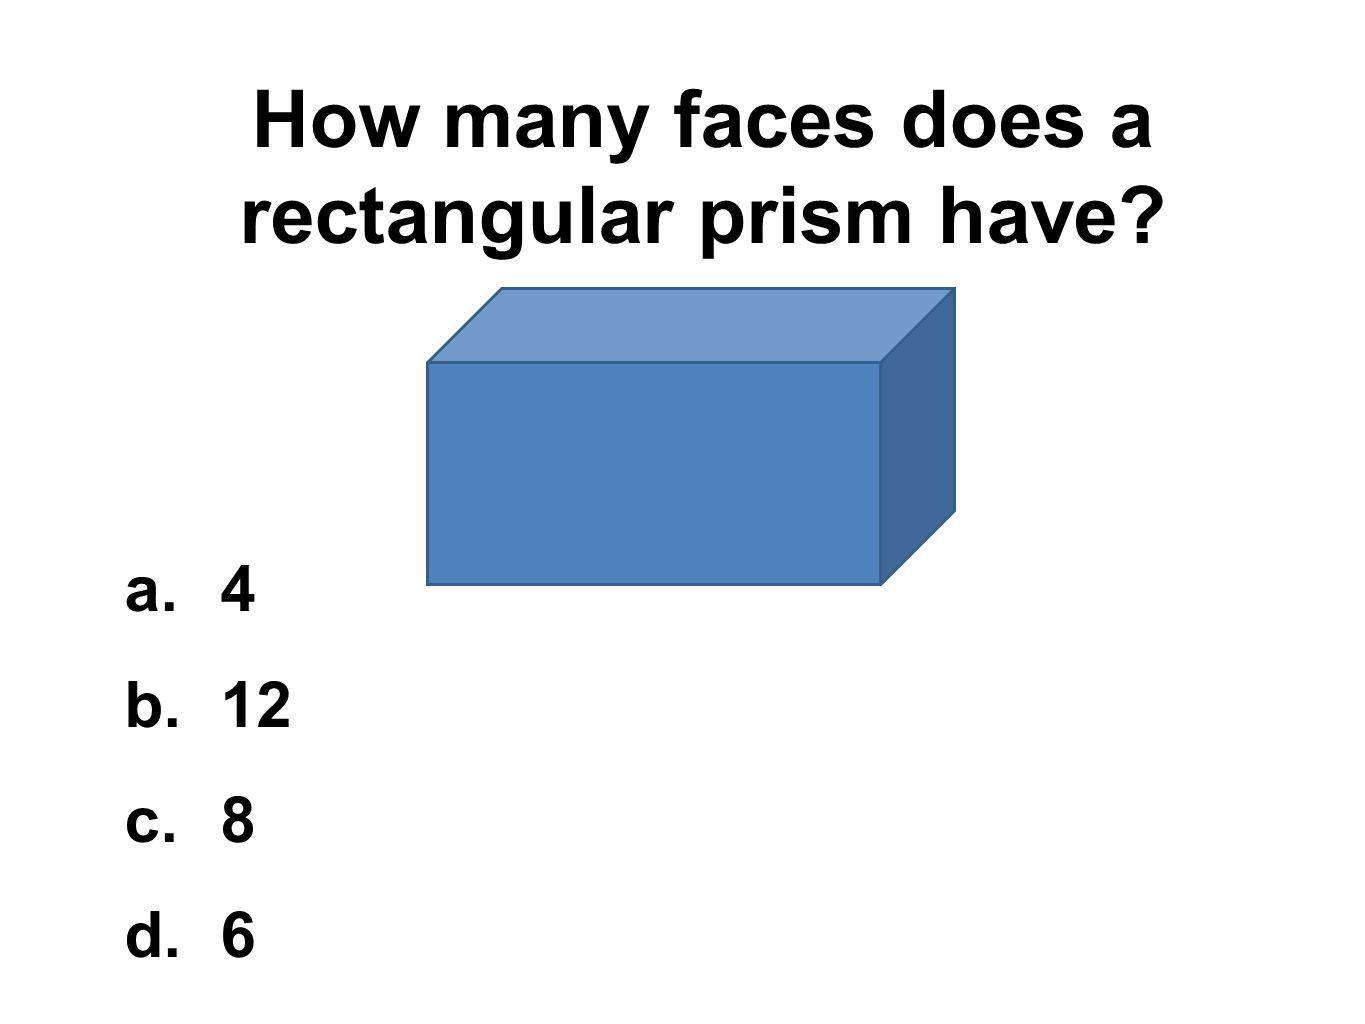 How many faces does a rectangular prism have